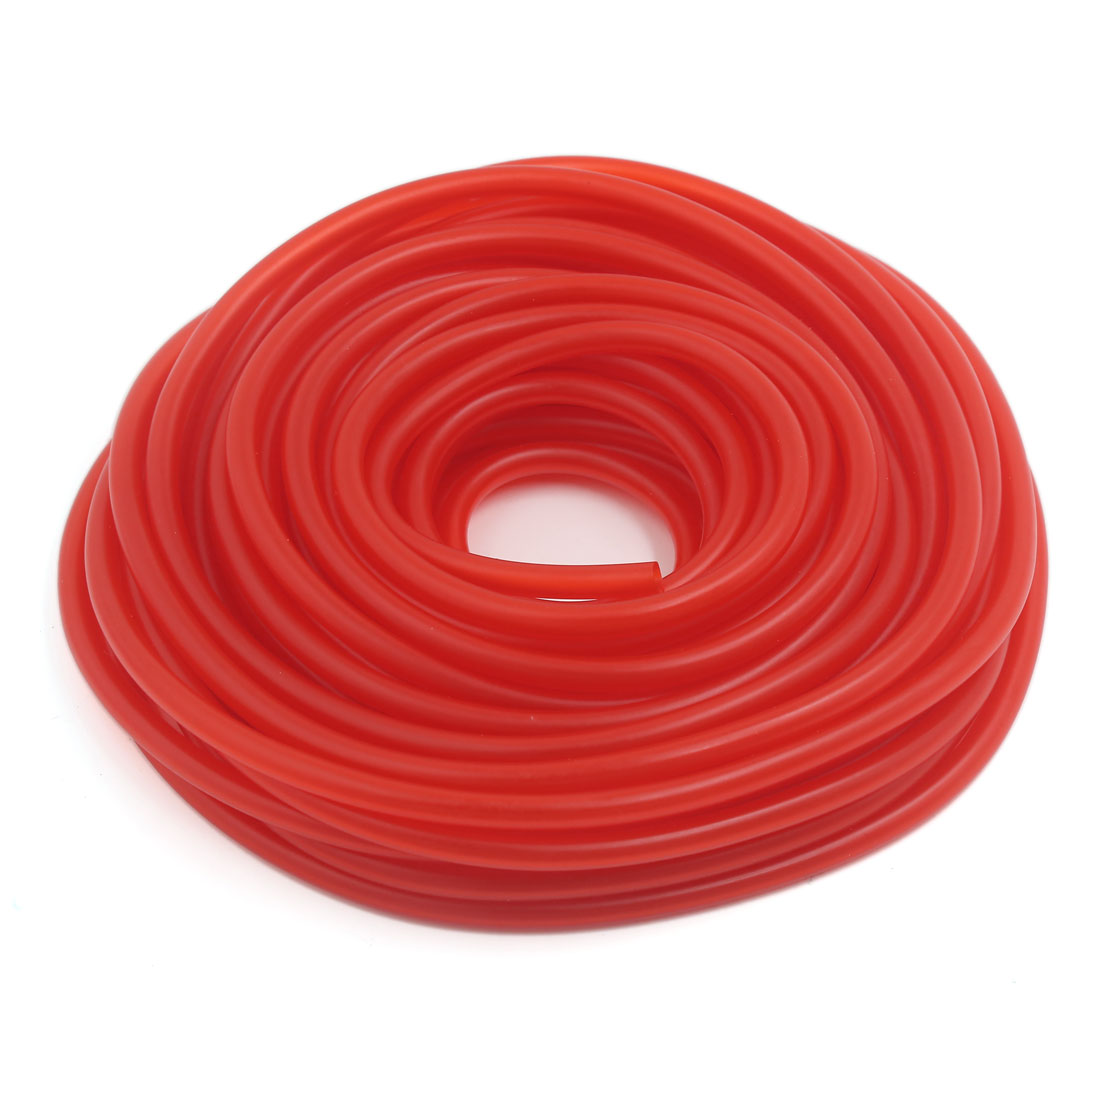 Motorcycle Bike 1m Fuel Gas Oil Delivery Tube Hose Petrol Pipes 5mm I//D 8mm O//D